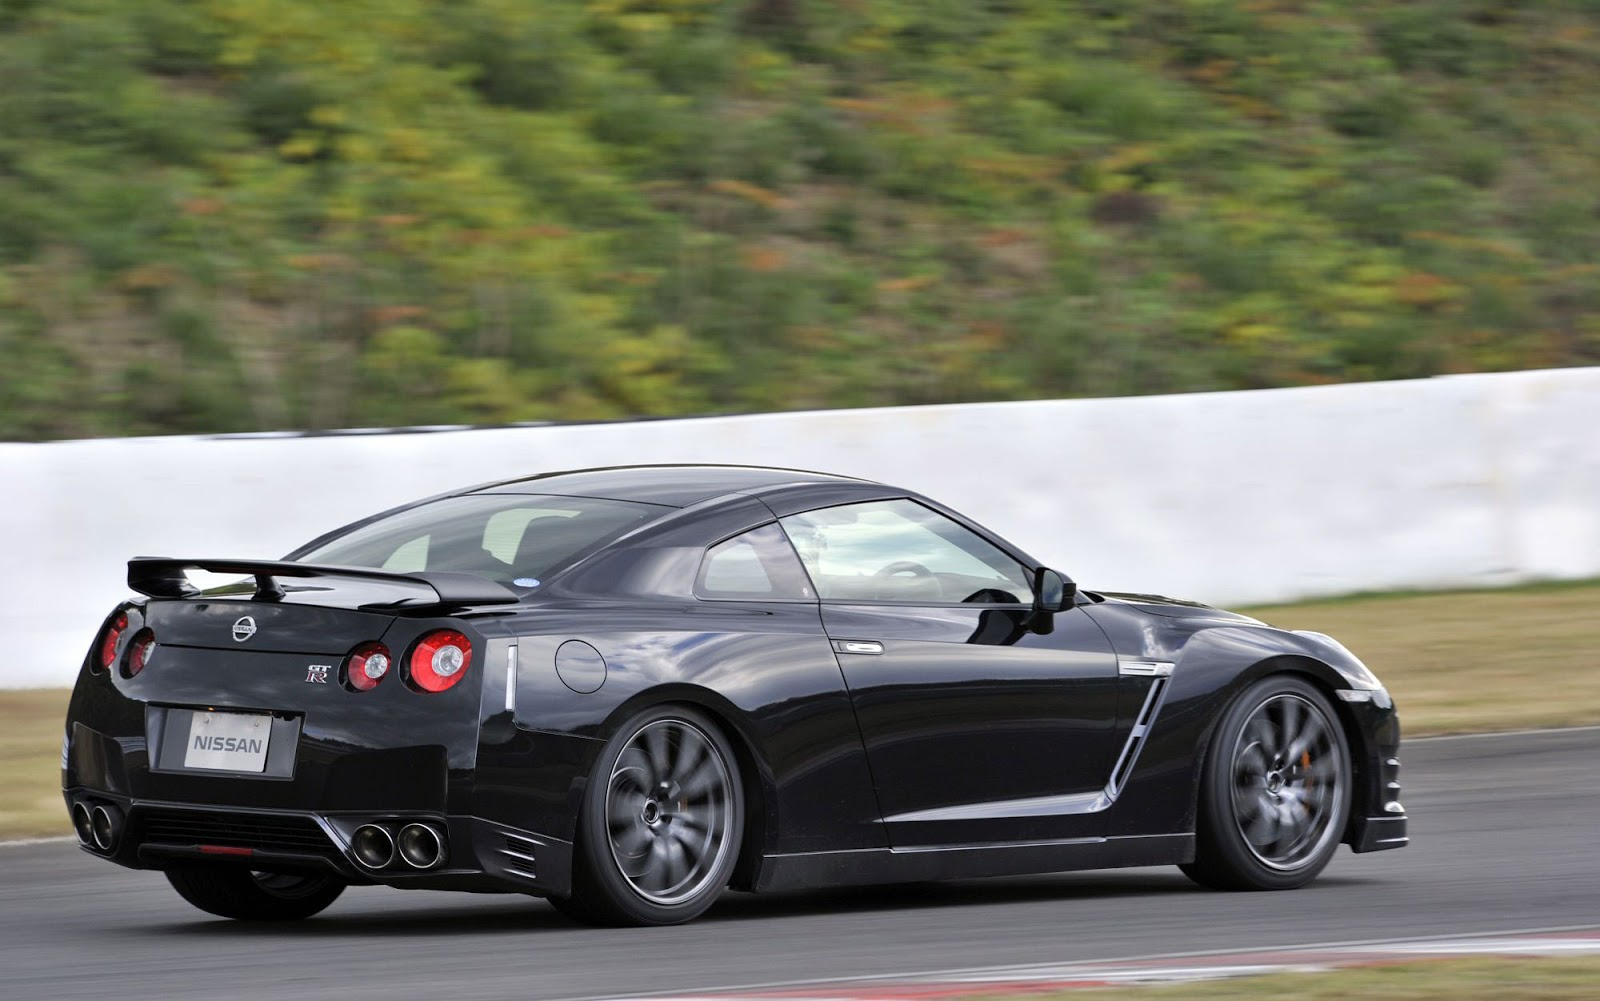 2014 nissan gt r japanese spec 5046 cars performance reviews and test drive. Black Bedroom Furniture Sets. Home Design Ideas